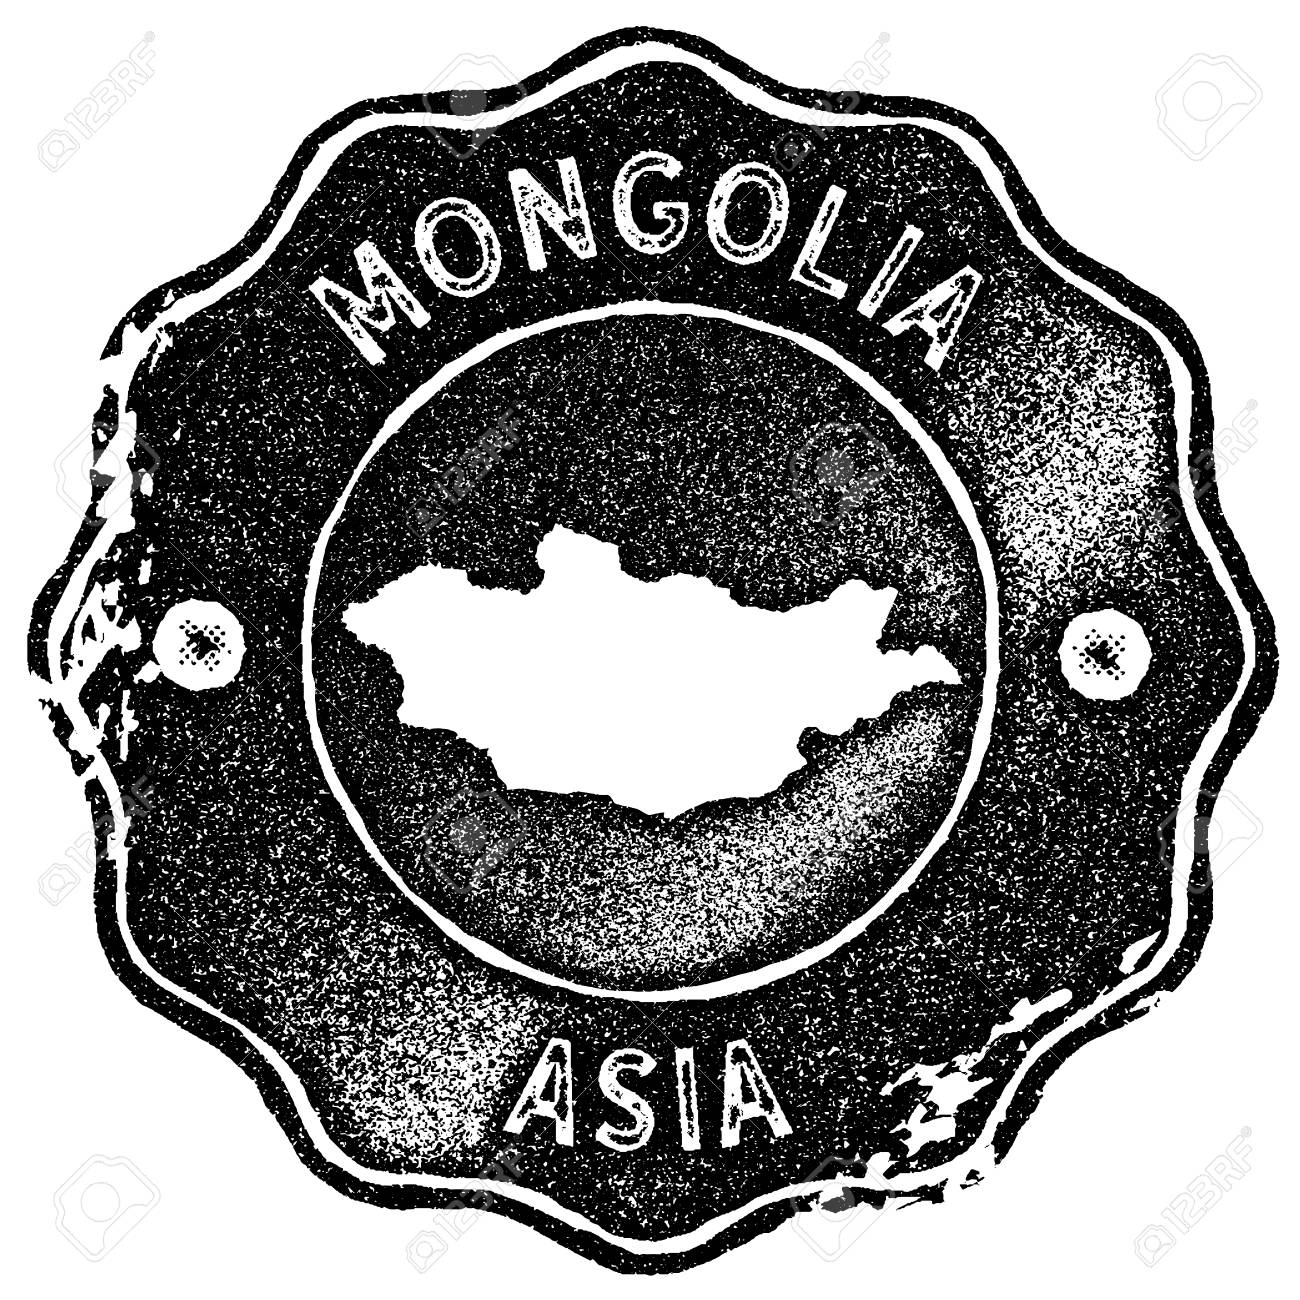 mongolia map vintage st retro style handmade label badge Mongolia Currency to Dollar mongolia map vintage st retro style handmade label badge or element for travel souvenirs